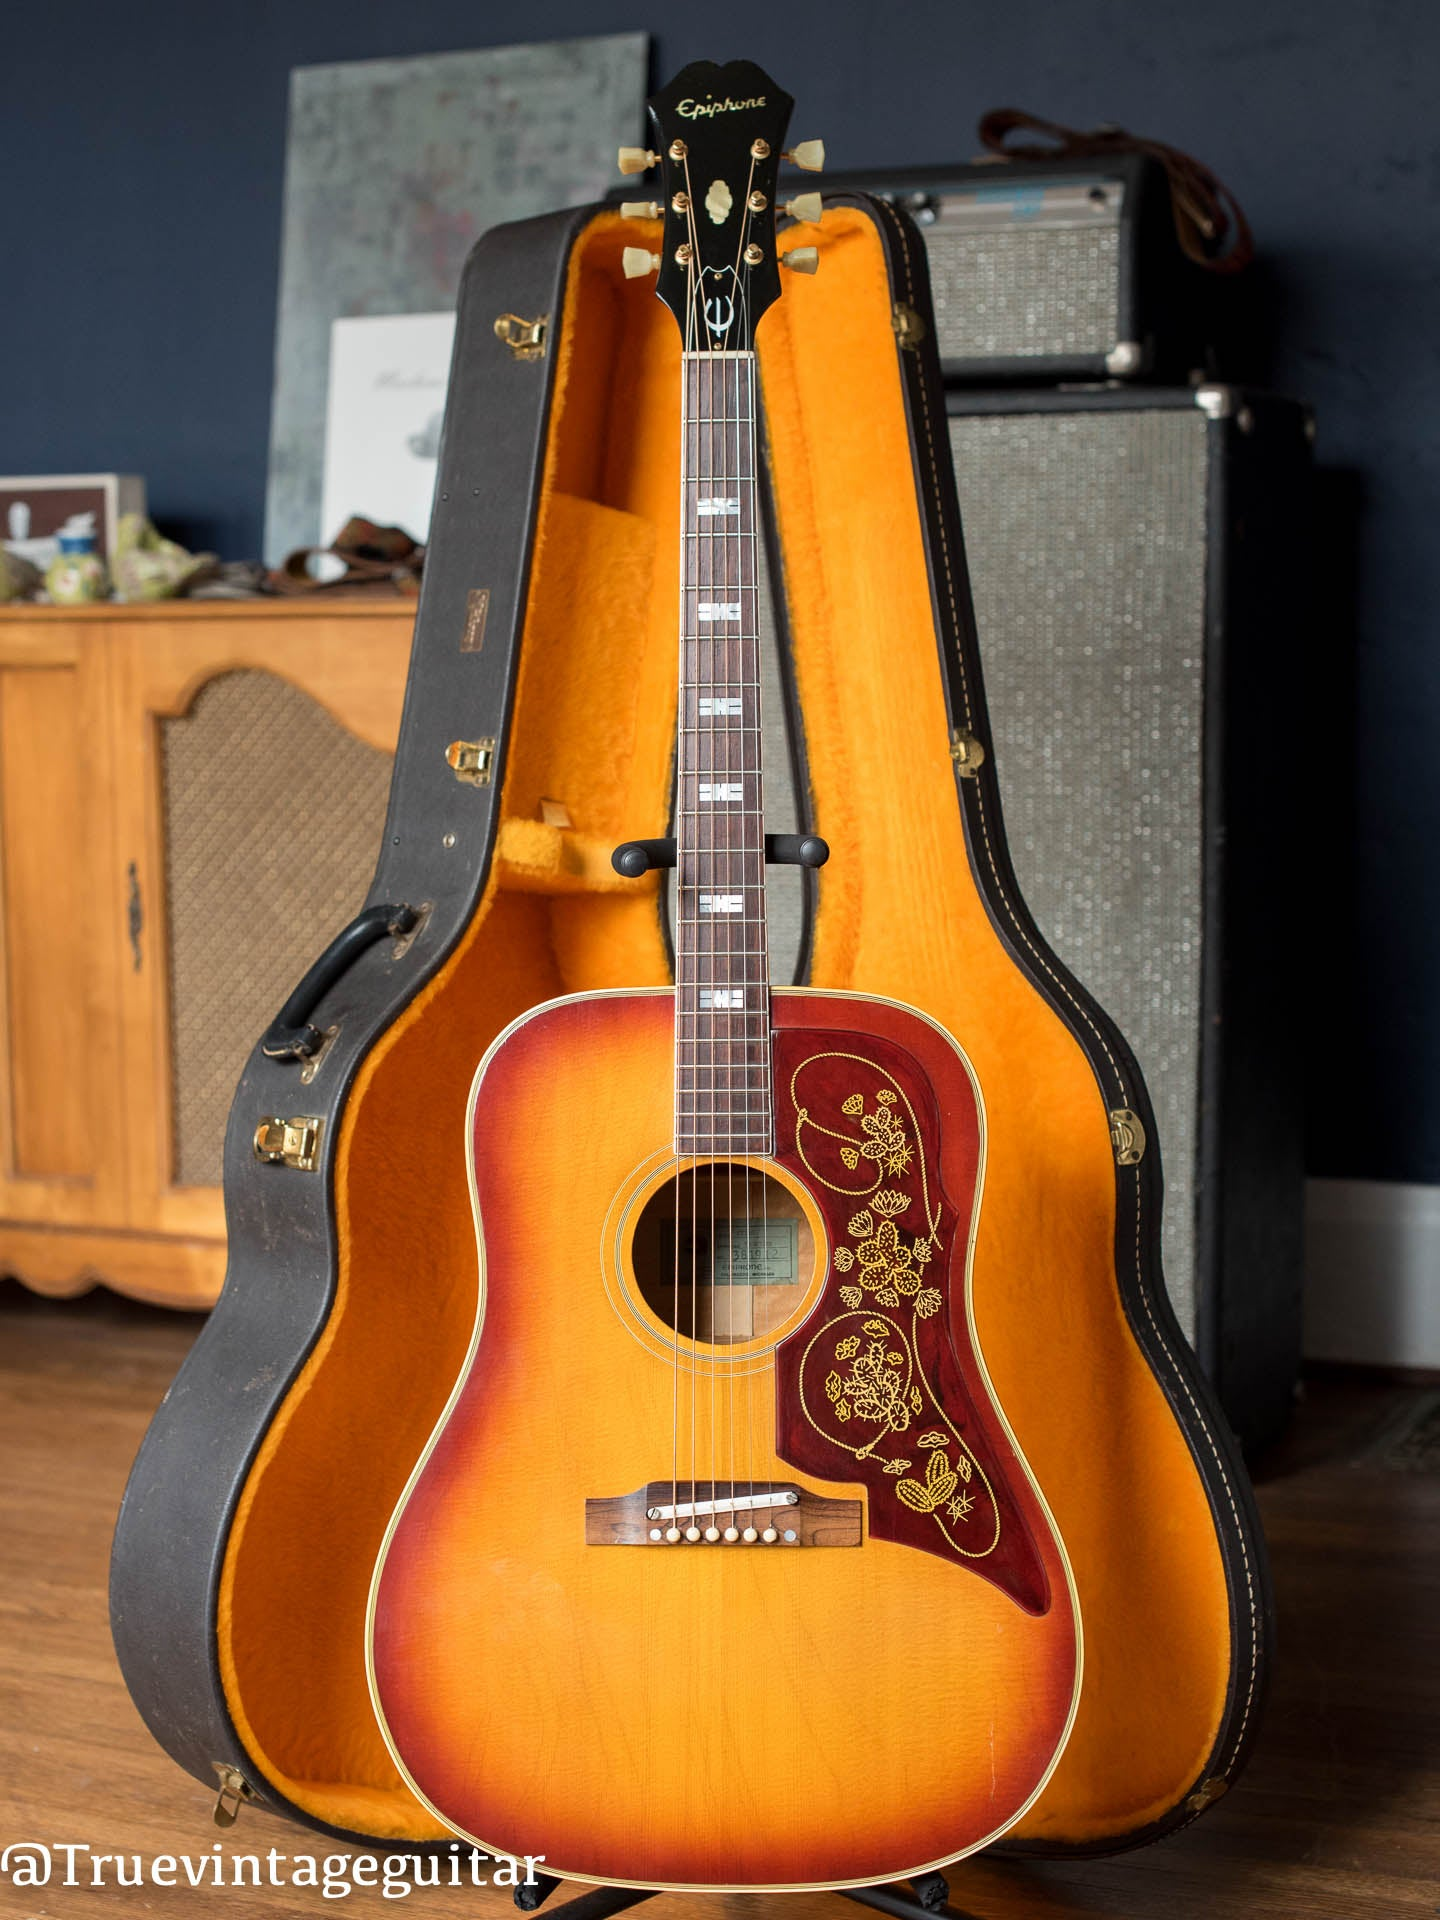 Where to sell vintage Epiphone guitar